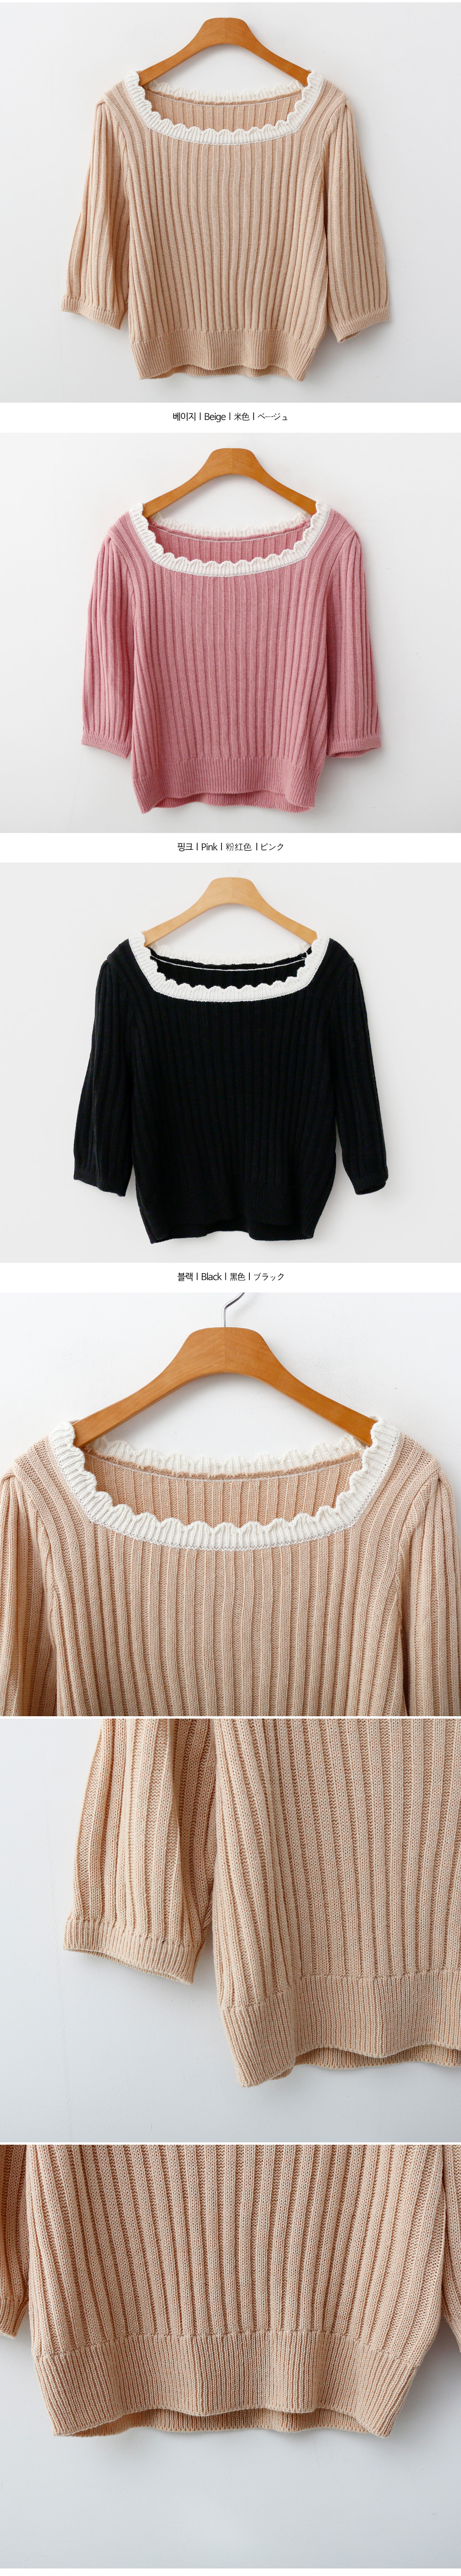 Square Lace Knitwear